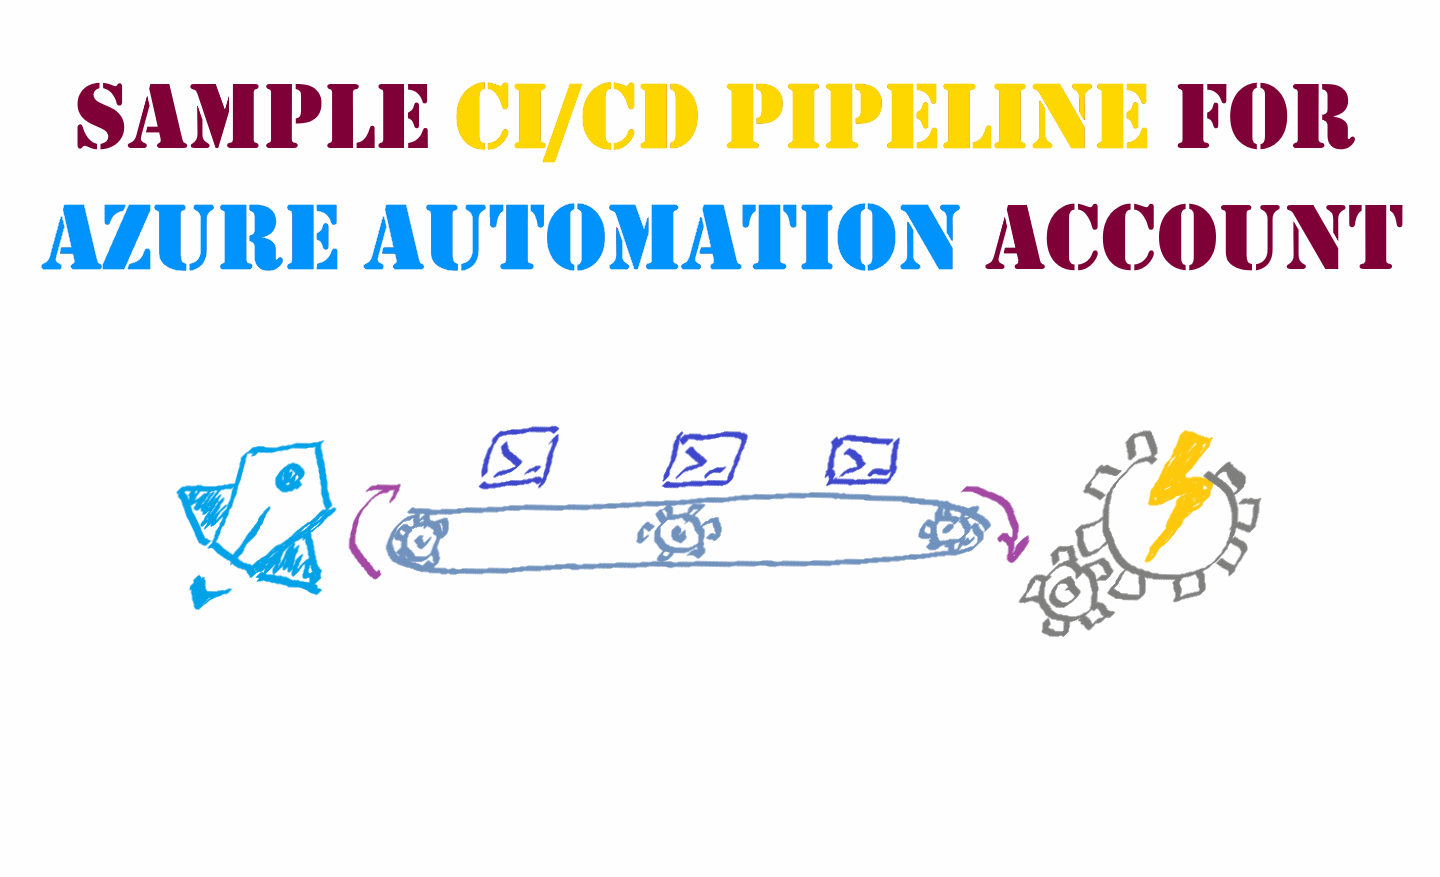 A sample CI/CD pipeline for Azure Automation account